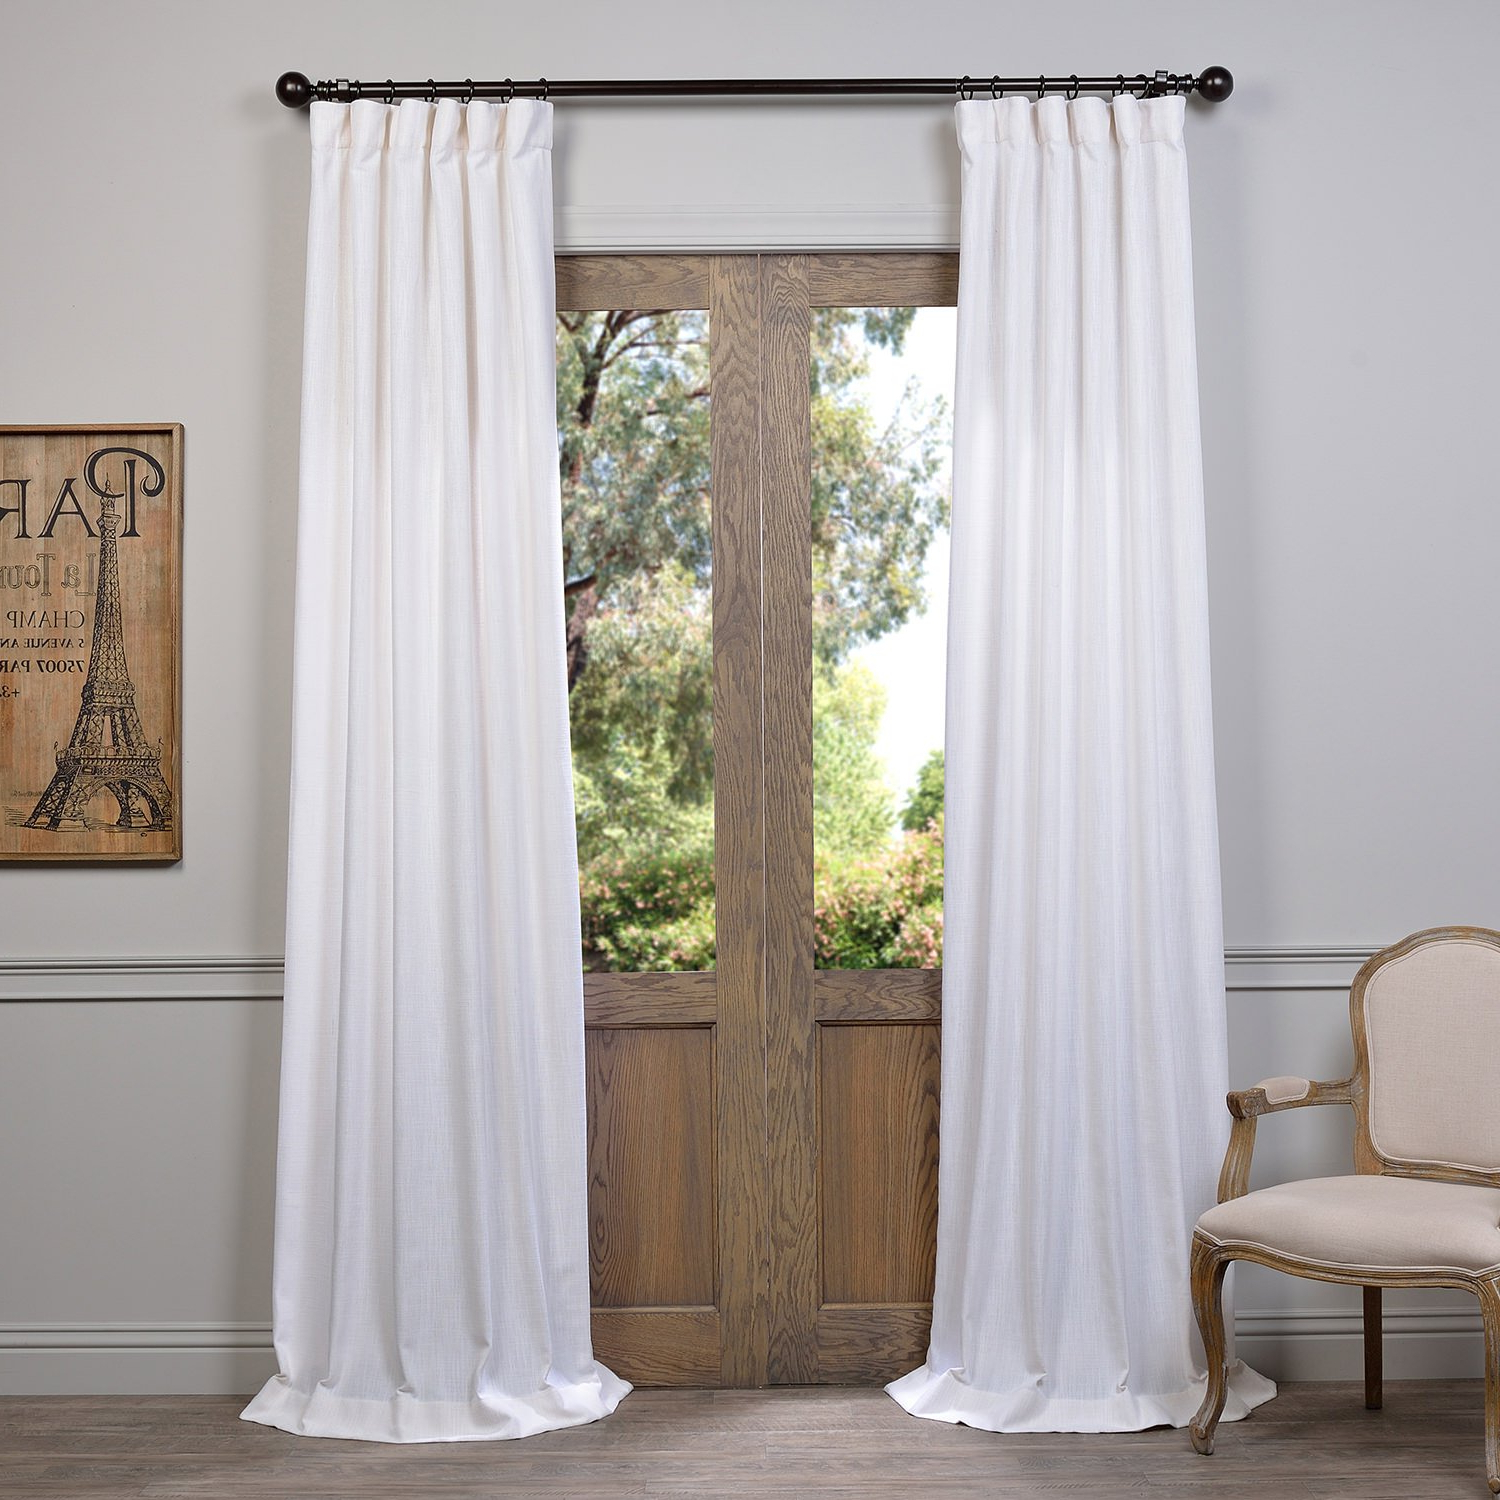 Heavy Faux Linen Single Curtain Panels Throughout Favorite Half Price Drapes Fhlch Vet13191 84 Heavy Faux Linen Curtain, 50 X 84, White (View 2 of 20)